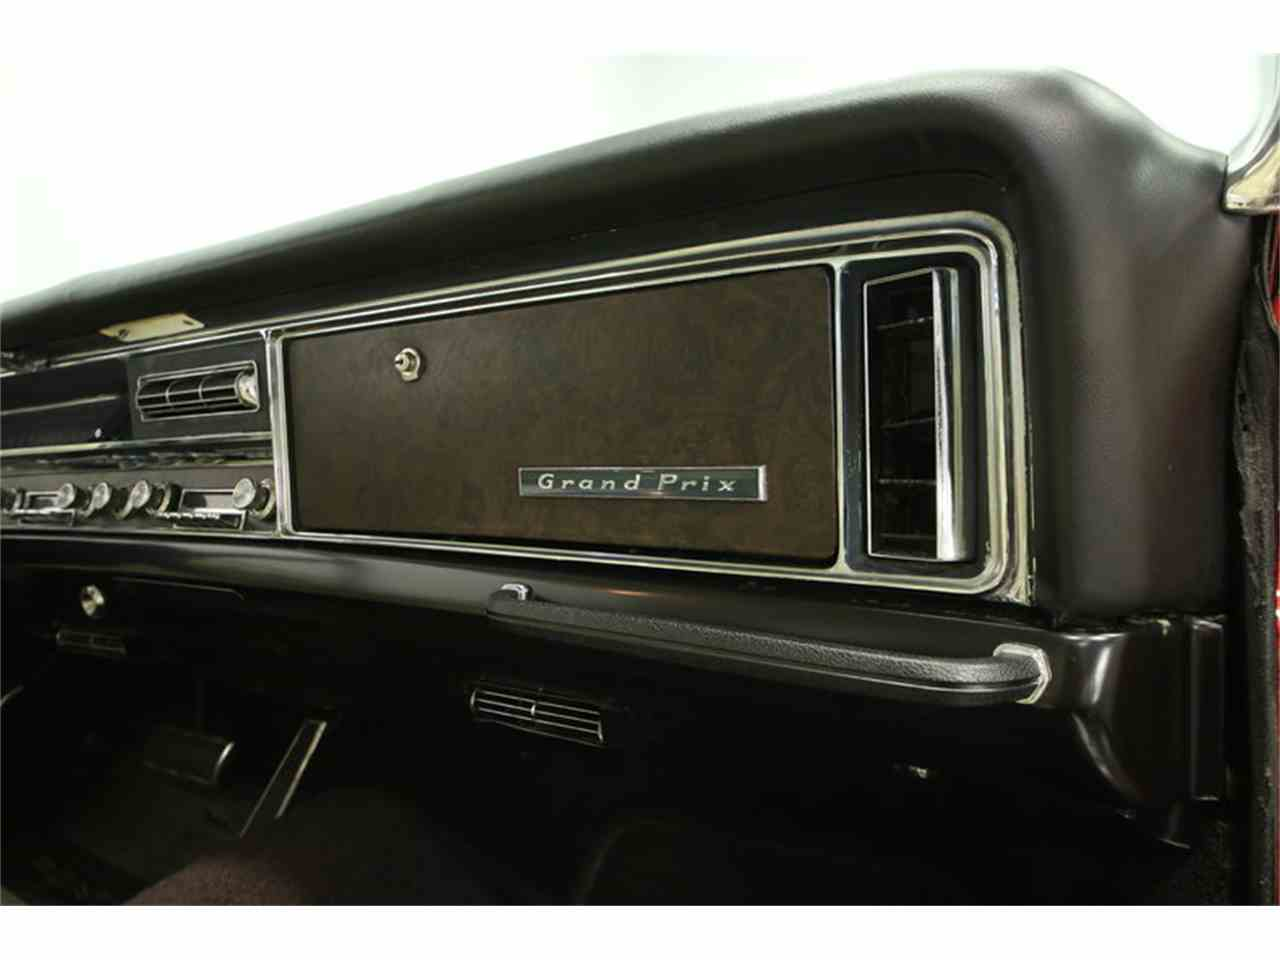 Large Picture of 1967 Pontiac Grand Prix - $24,995.00 Offered by Streetside Classics - Tampa - JUBA